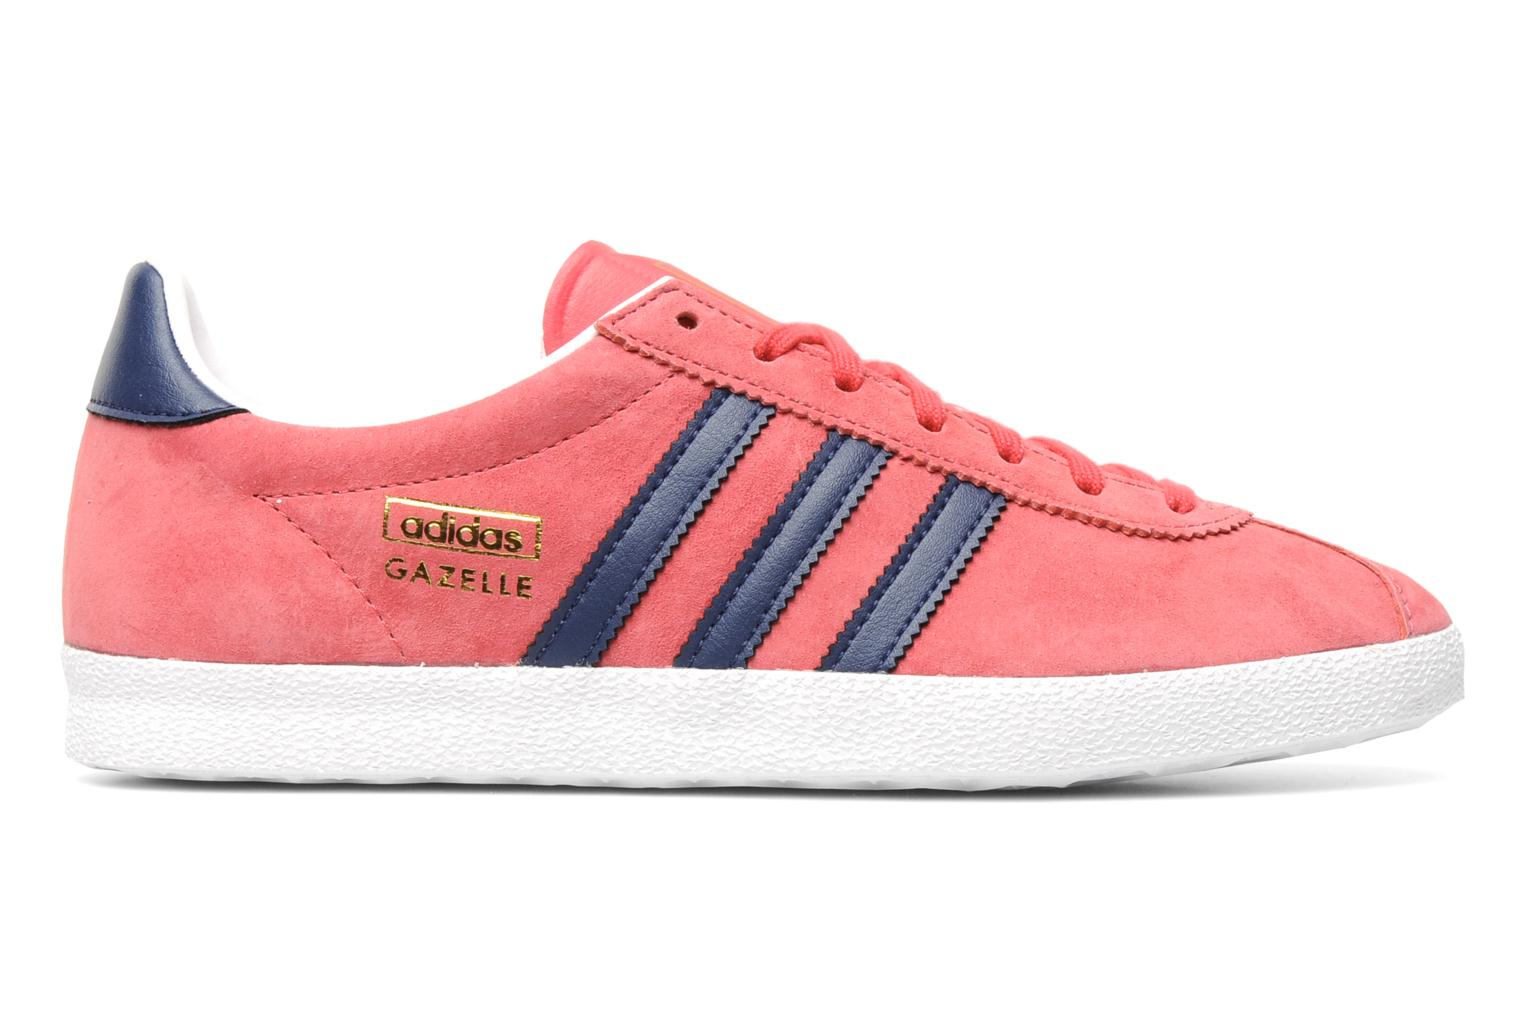 adidas originals gazelle og w trainers in pink at 143337. Black Bedroom Furniture Sets. Home Design Ideas